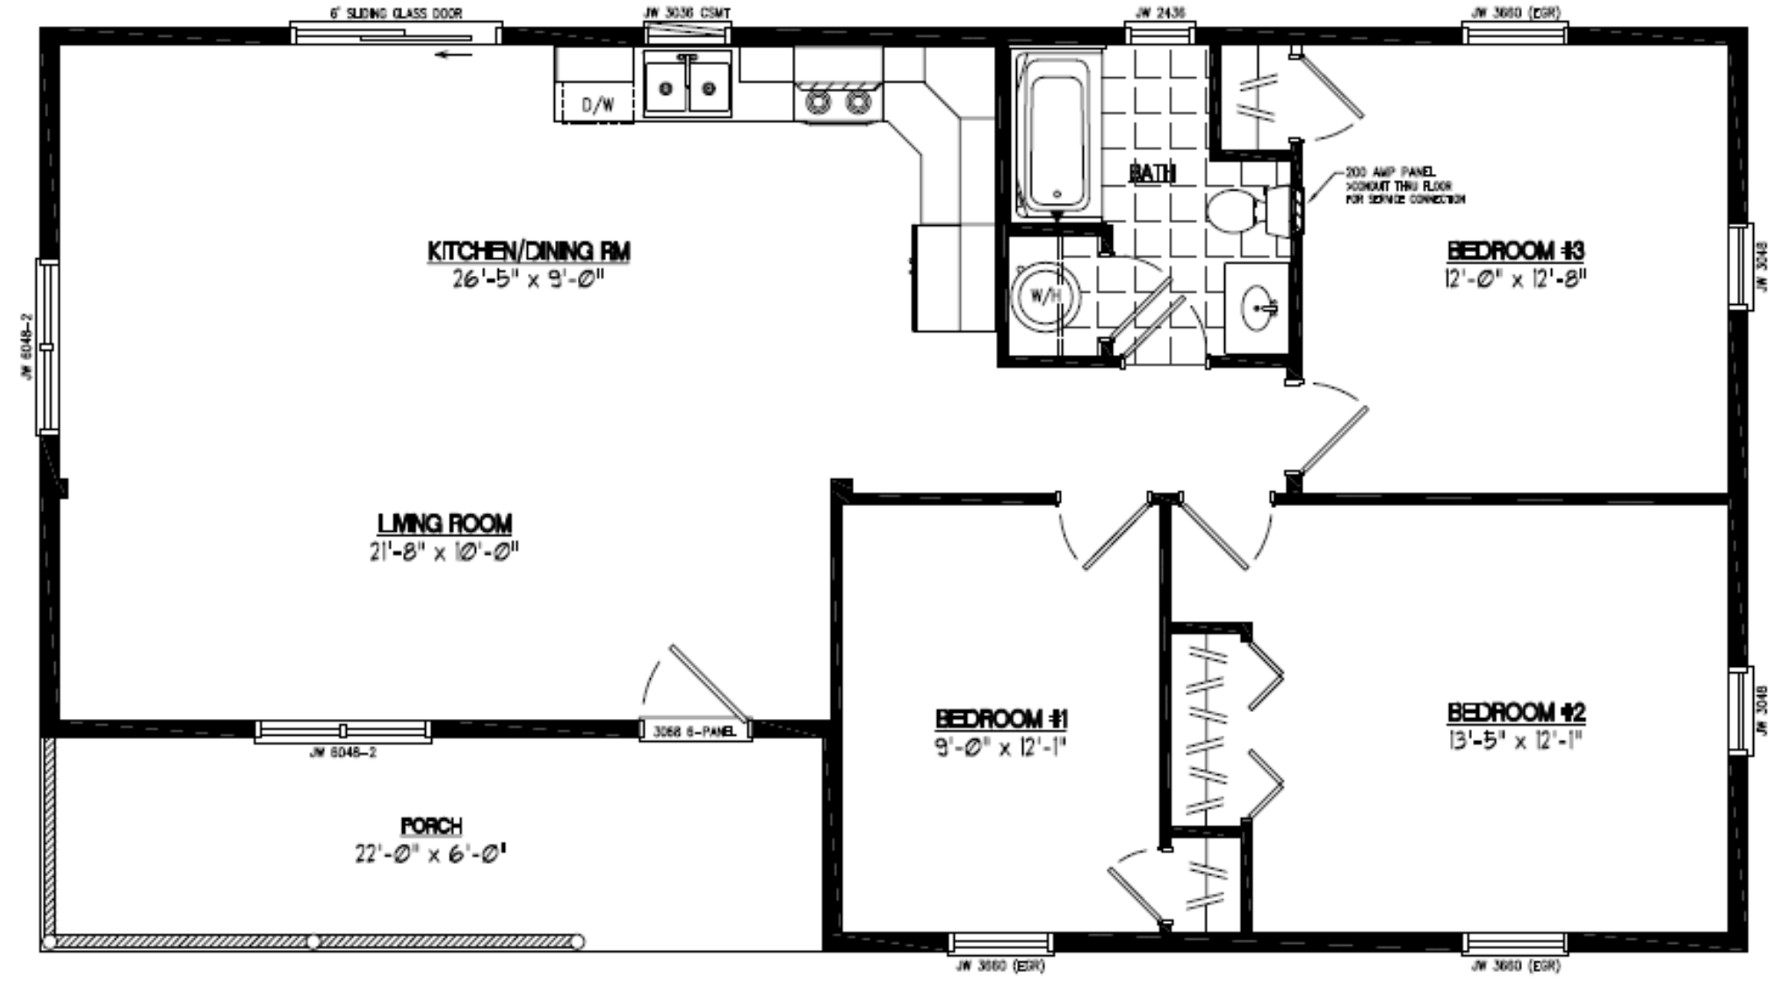 Small Slaughter House Plans furthermore Frontier Style House Plans as well I0000CXULsL5xbDI likewise San Antonio House Plans moreover San Antonio House Plans. on irish carriage house designs